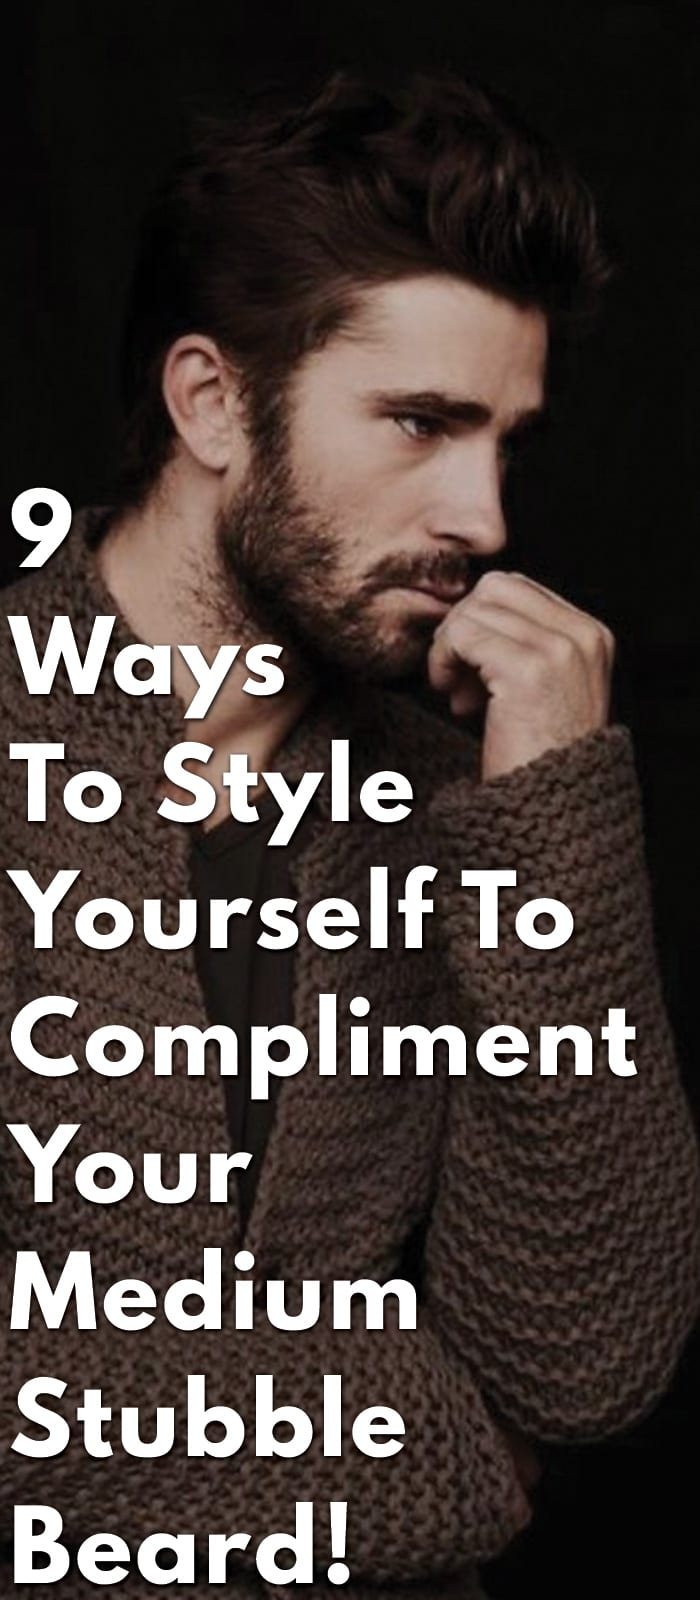 9-Ways-To-Style-Yourself-To-Compliment-Your-Medium-Stubble-Beard!